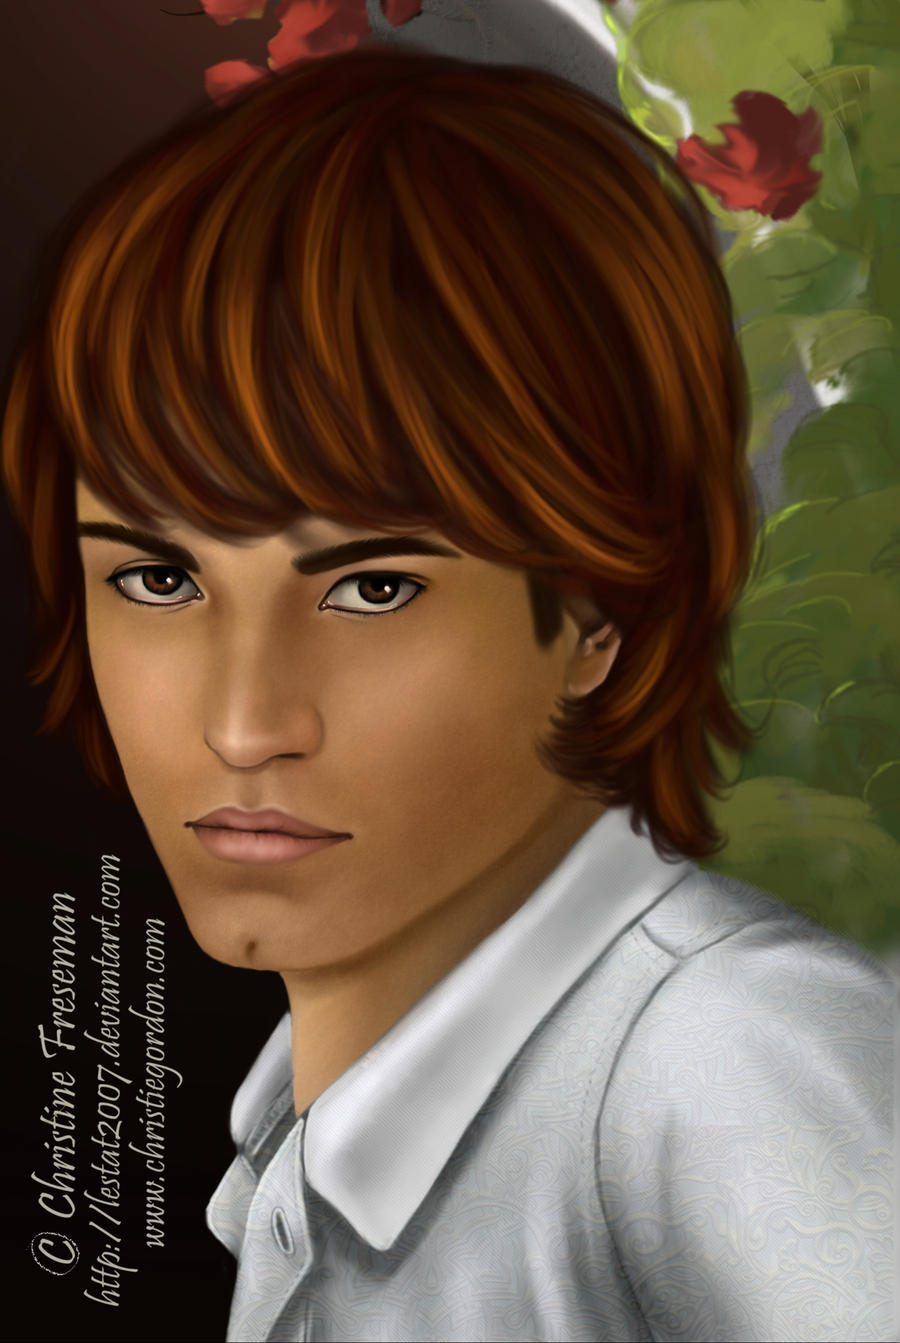 Collin - The Obsession by lestat2007